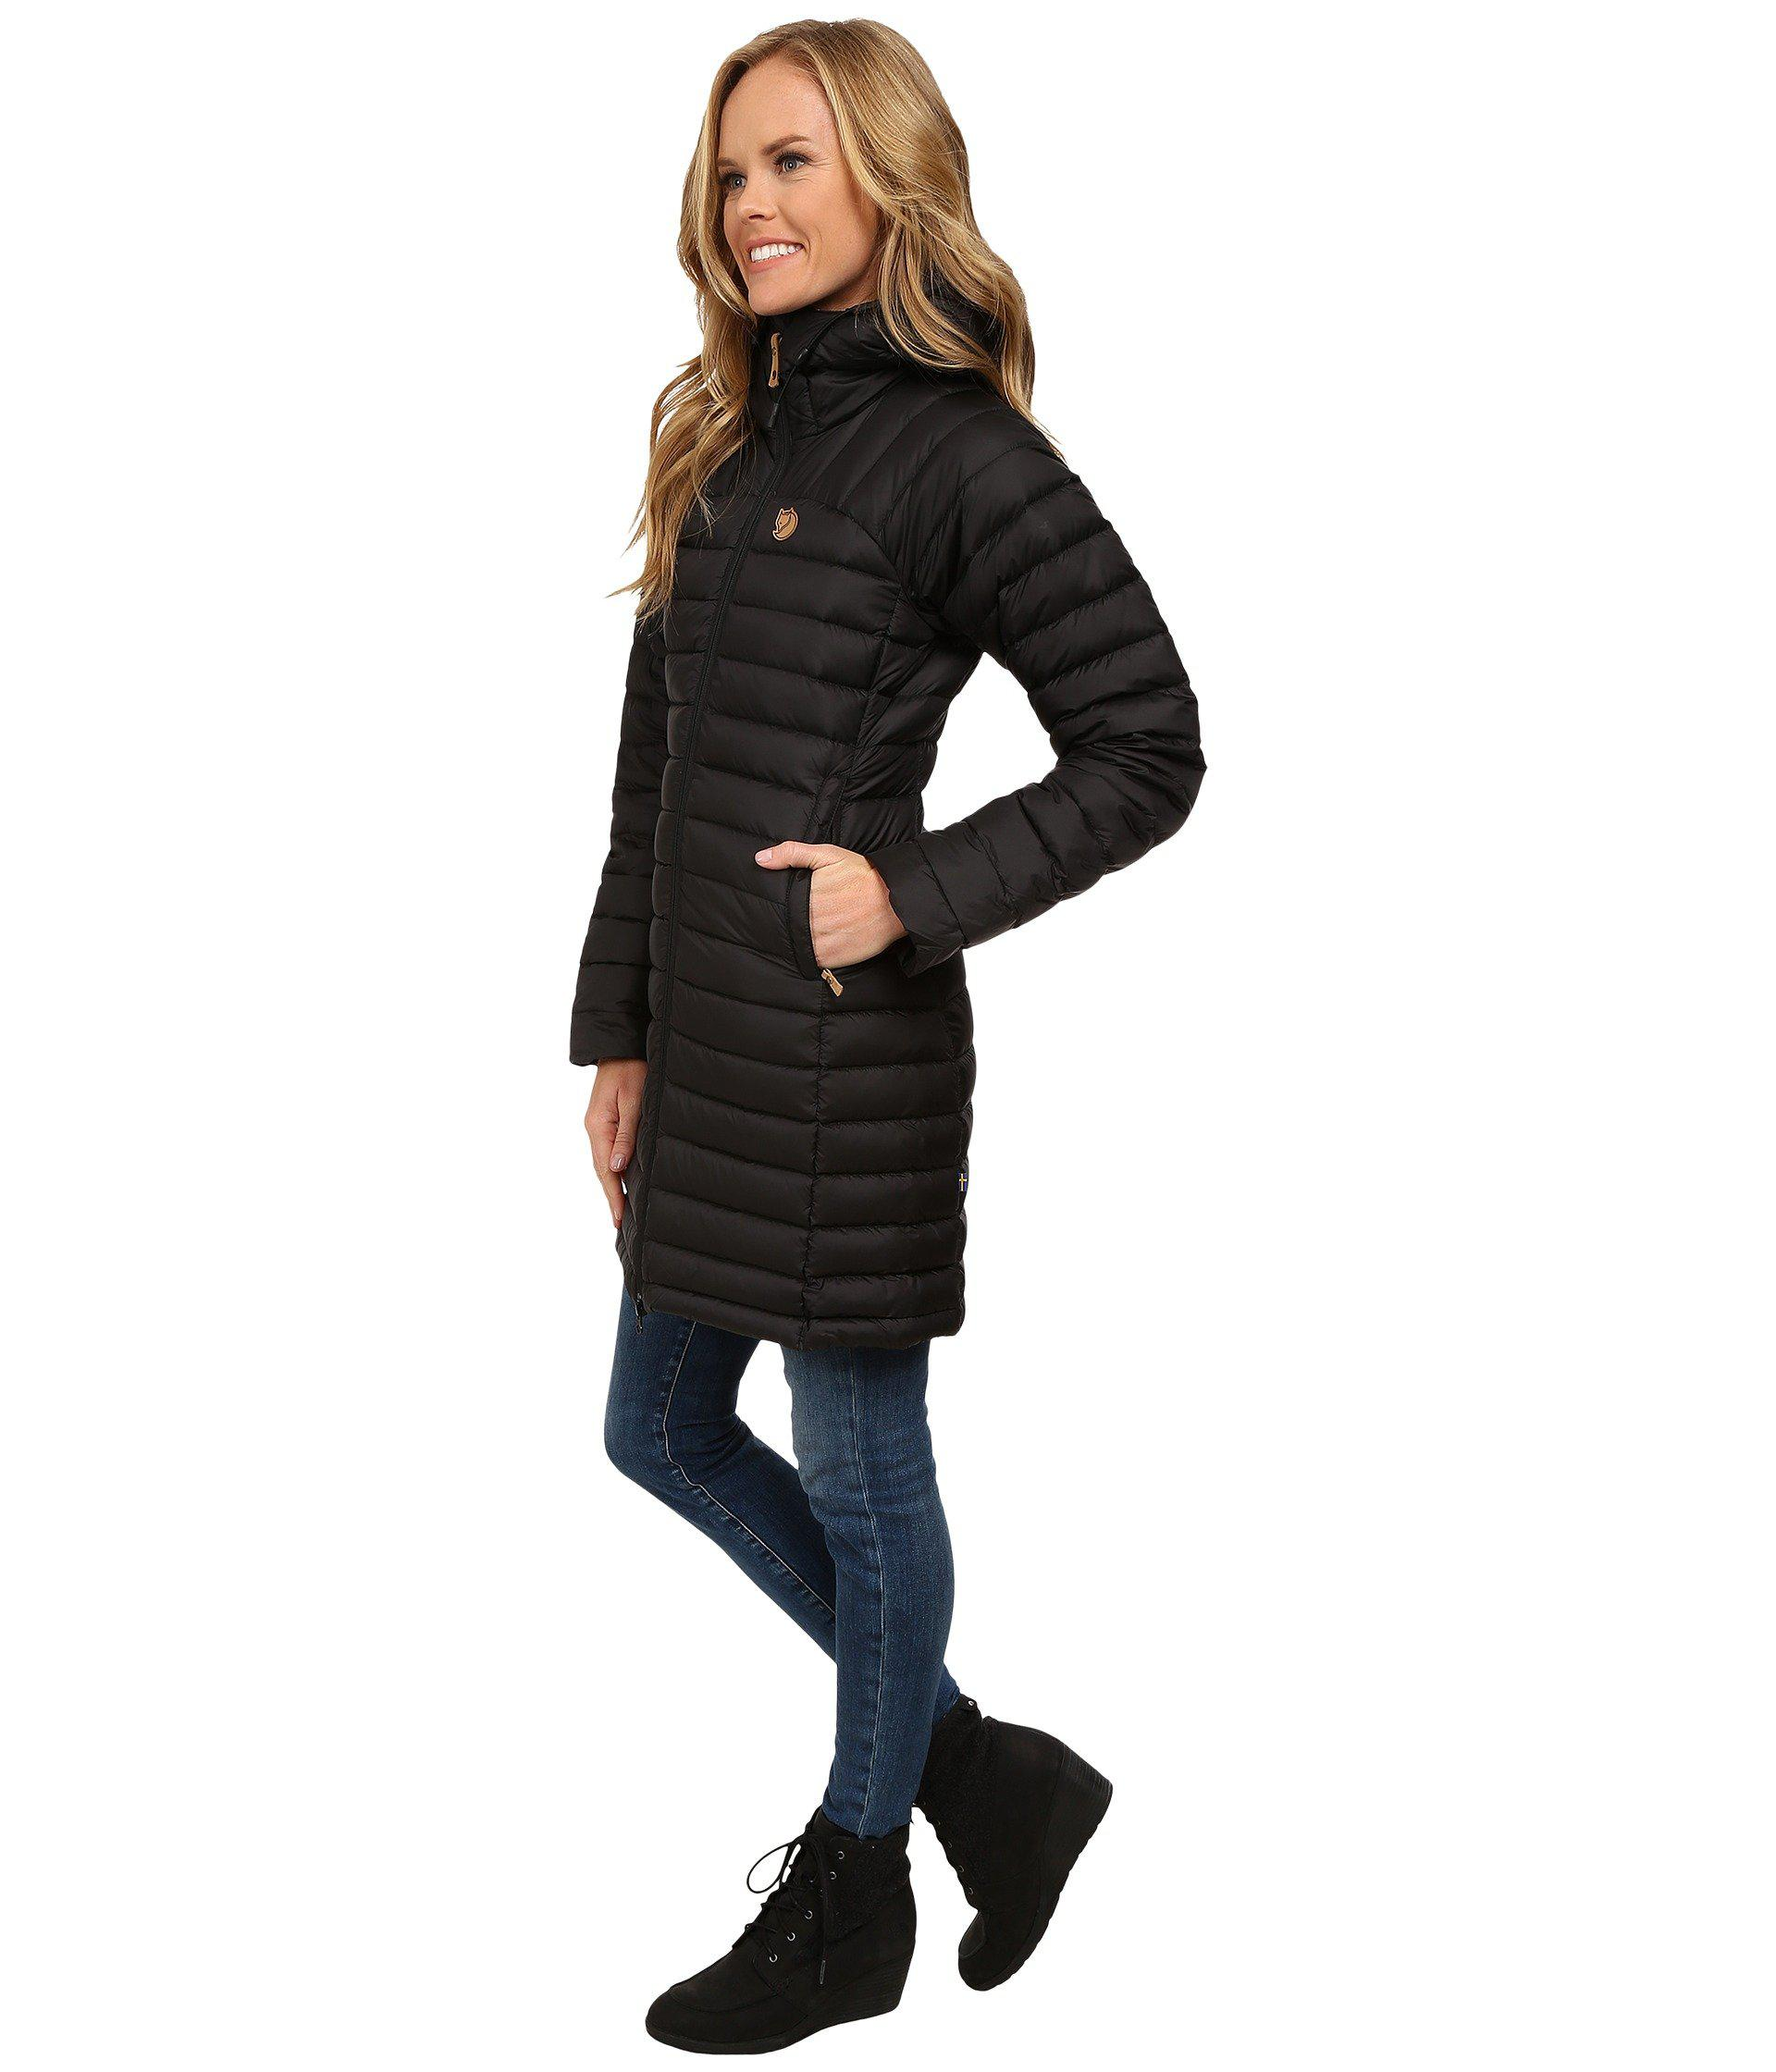 2f96b2b38ec0e Lyst - Fjallraven Snow Flake Parka (dark Garnet) Women s Coat in Black